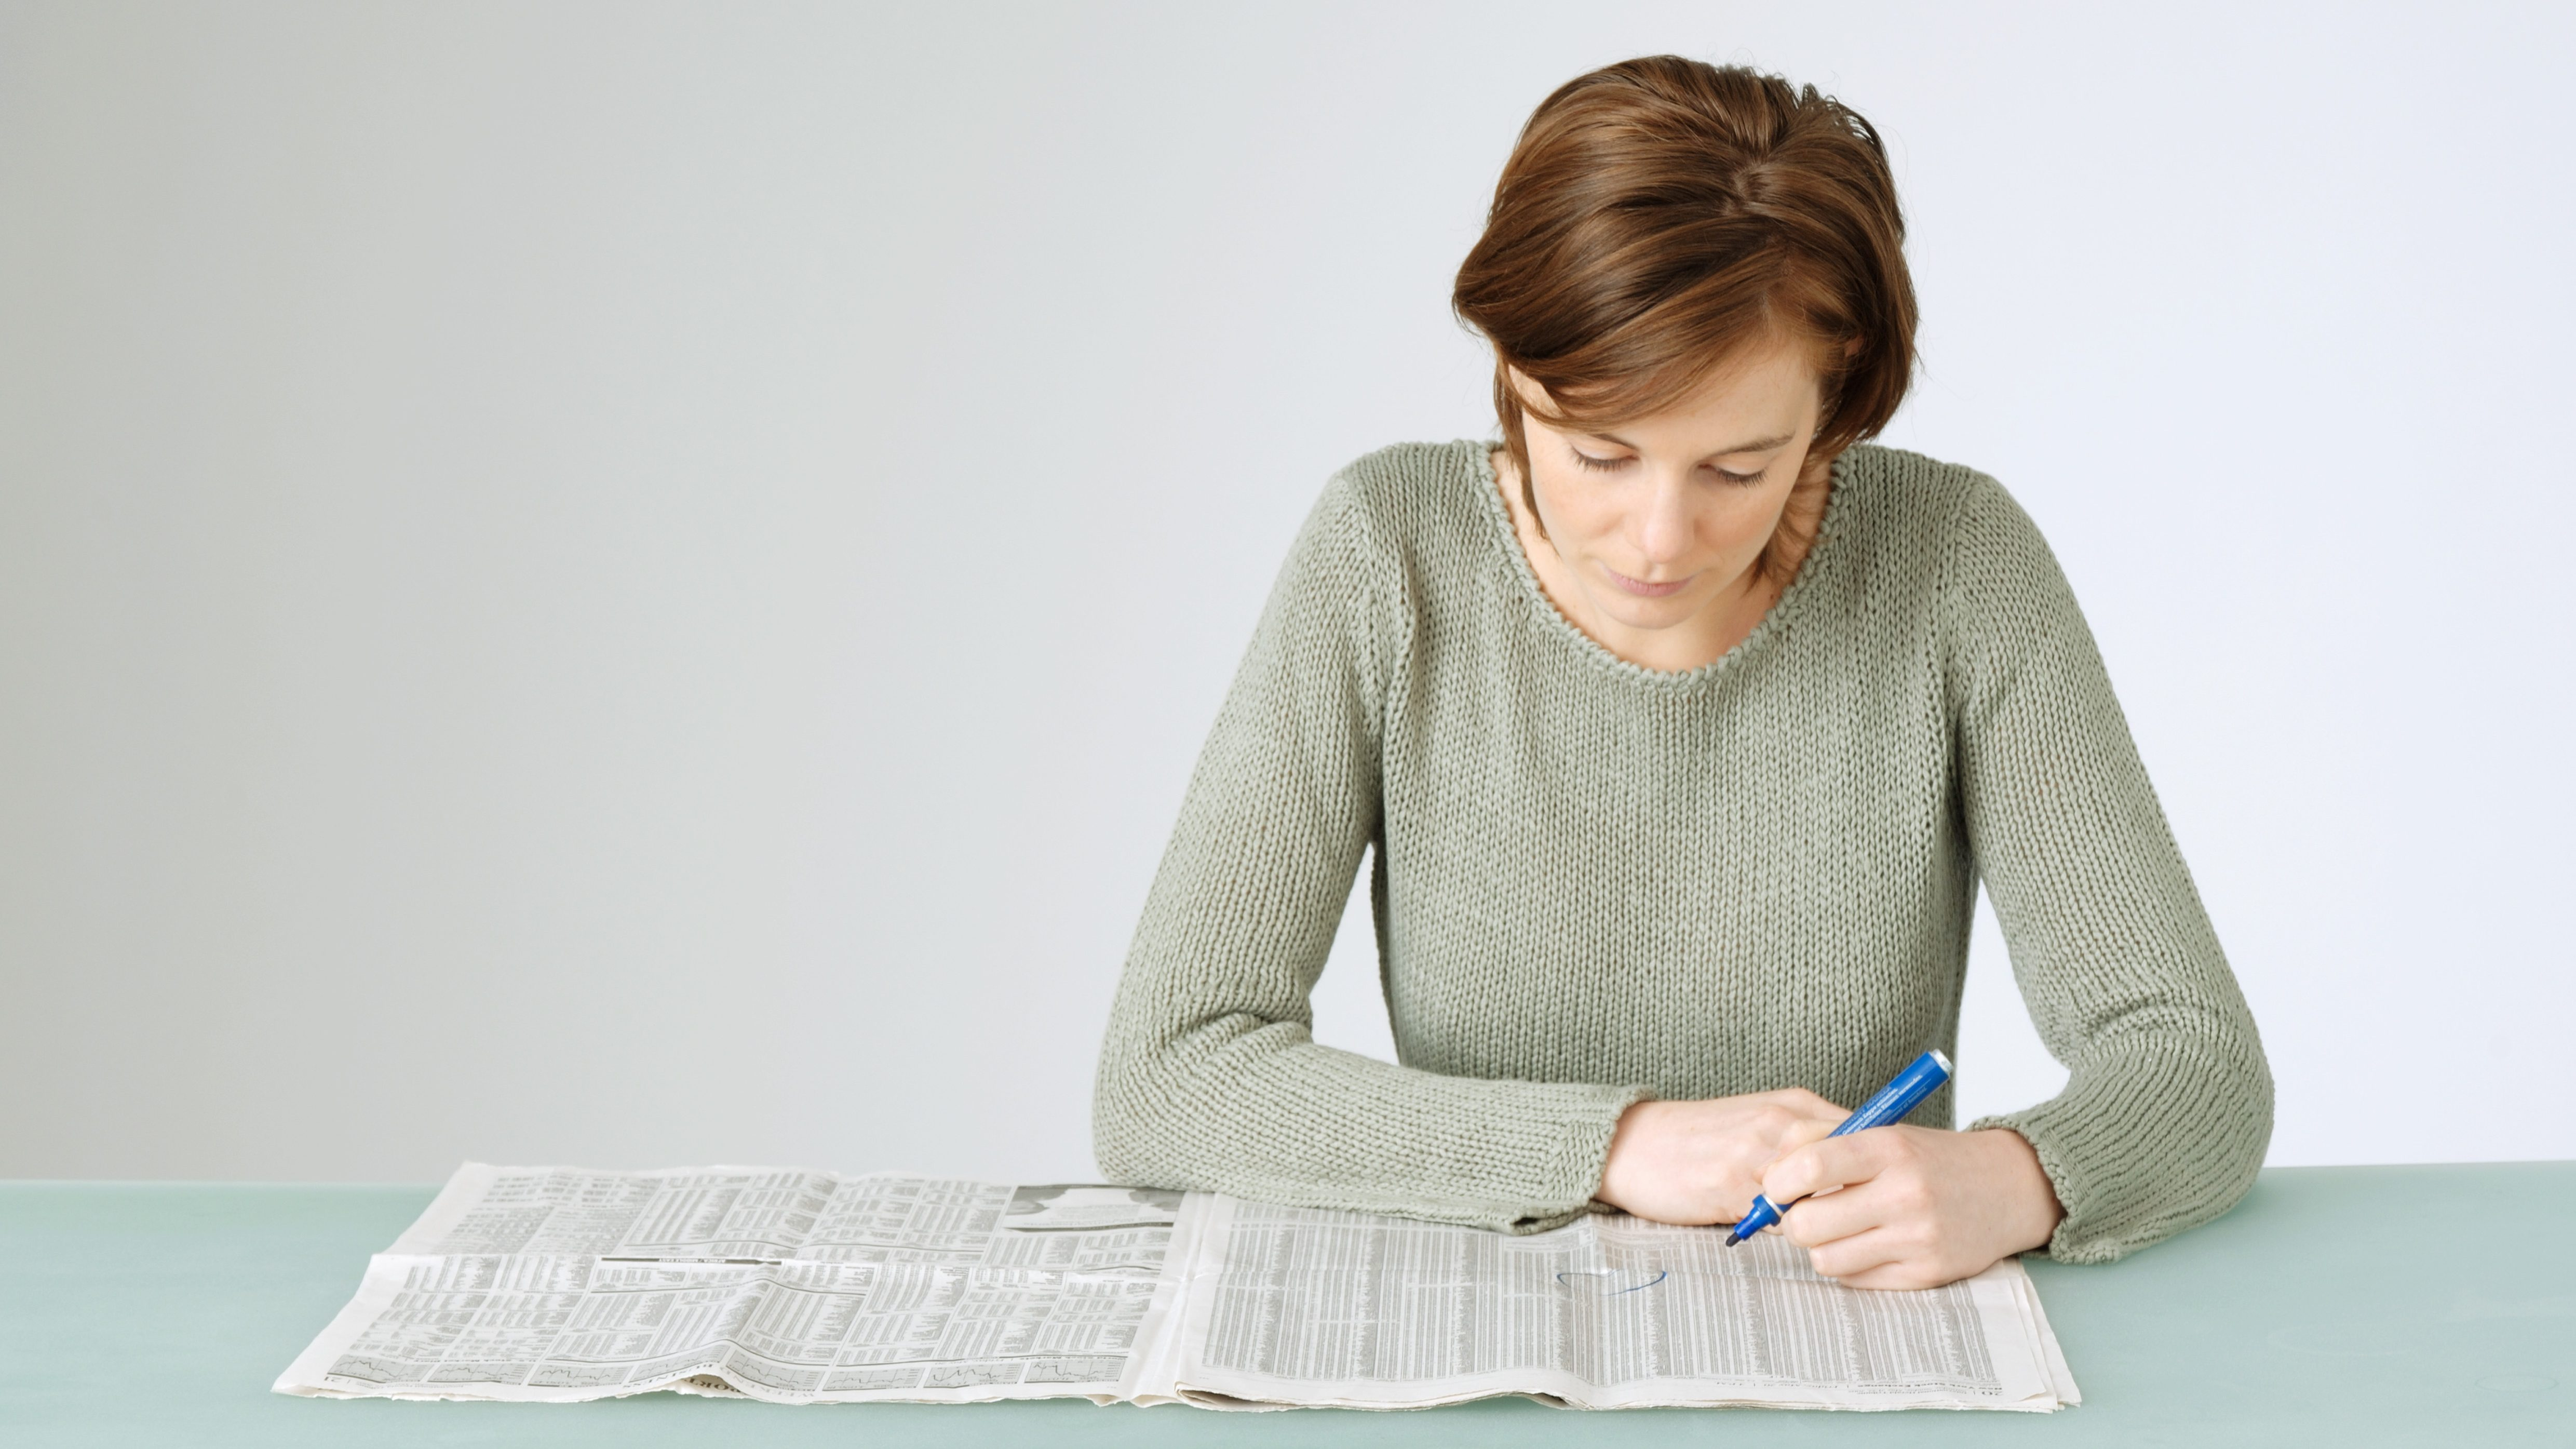 Young woman looking at open newspaper, holding pen